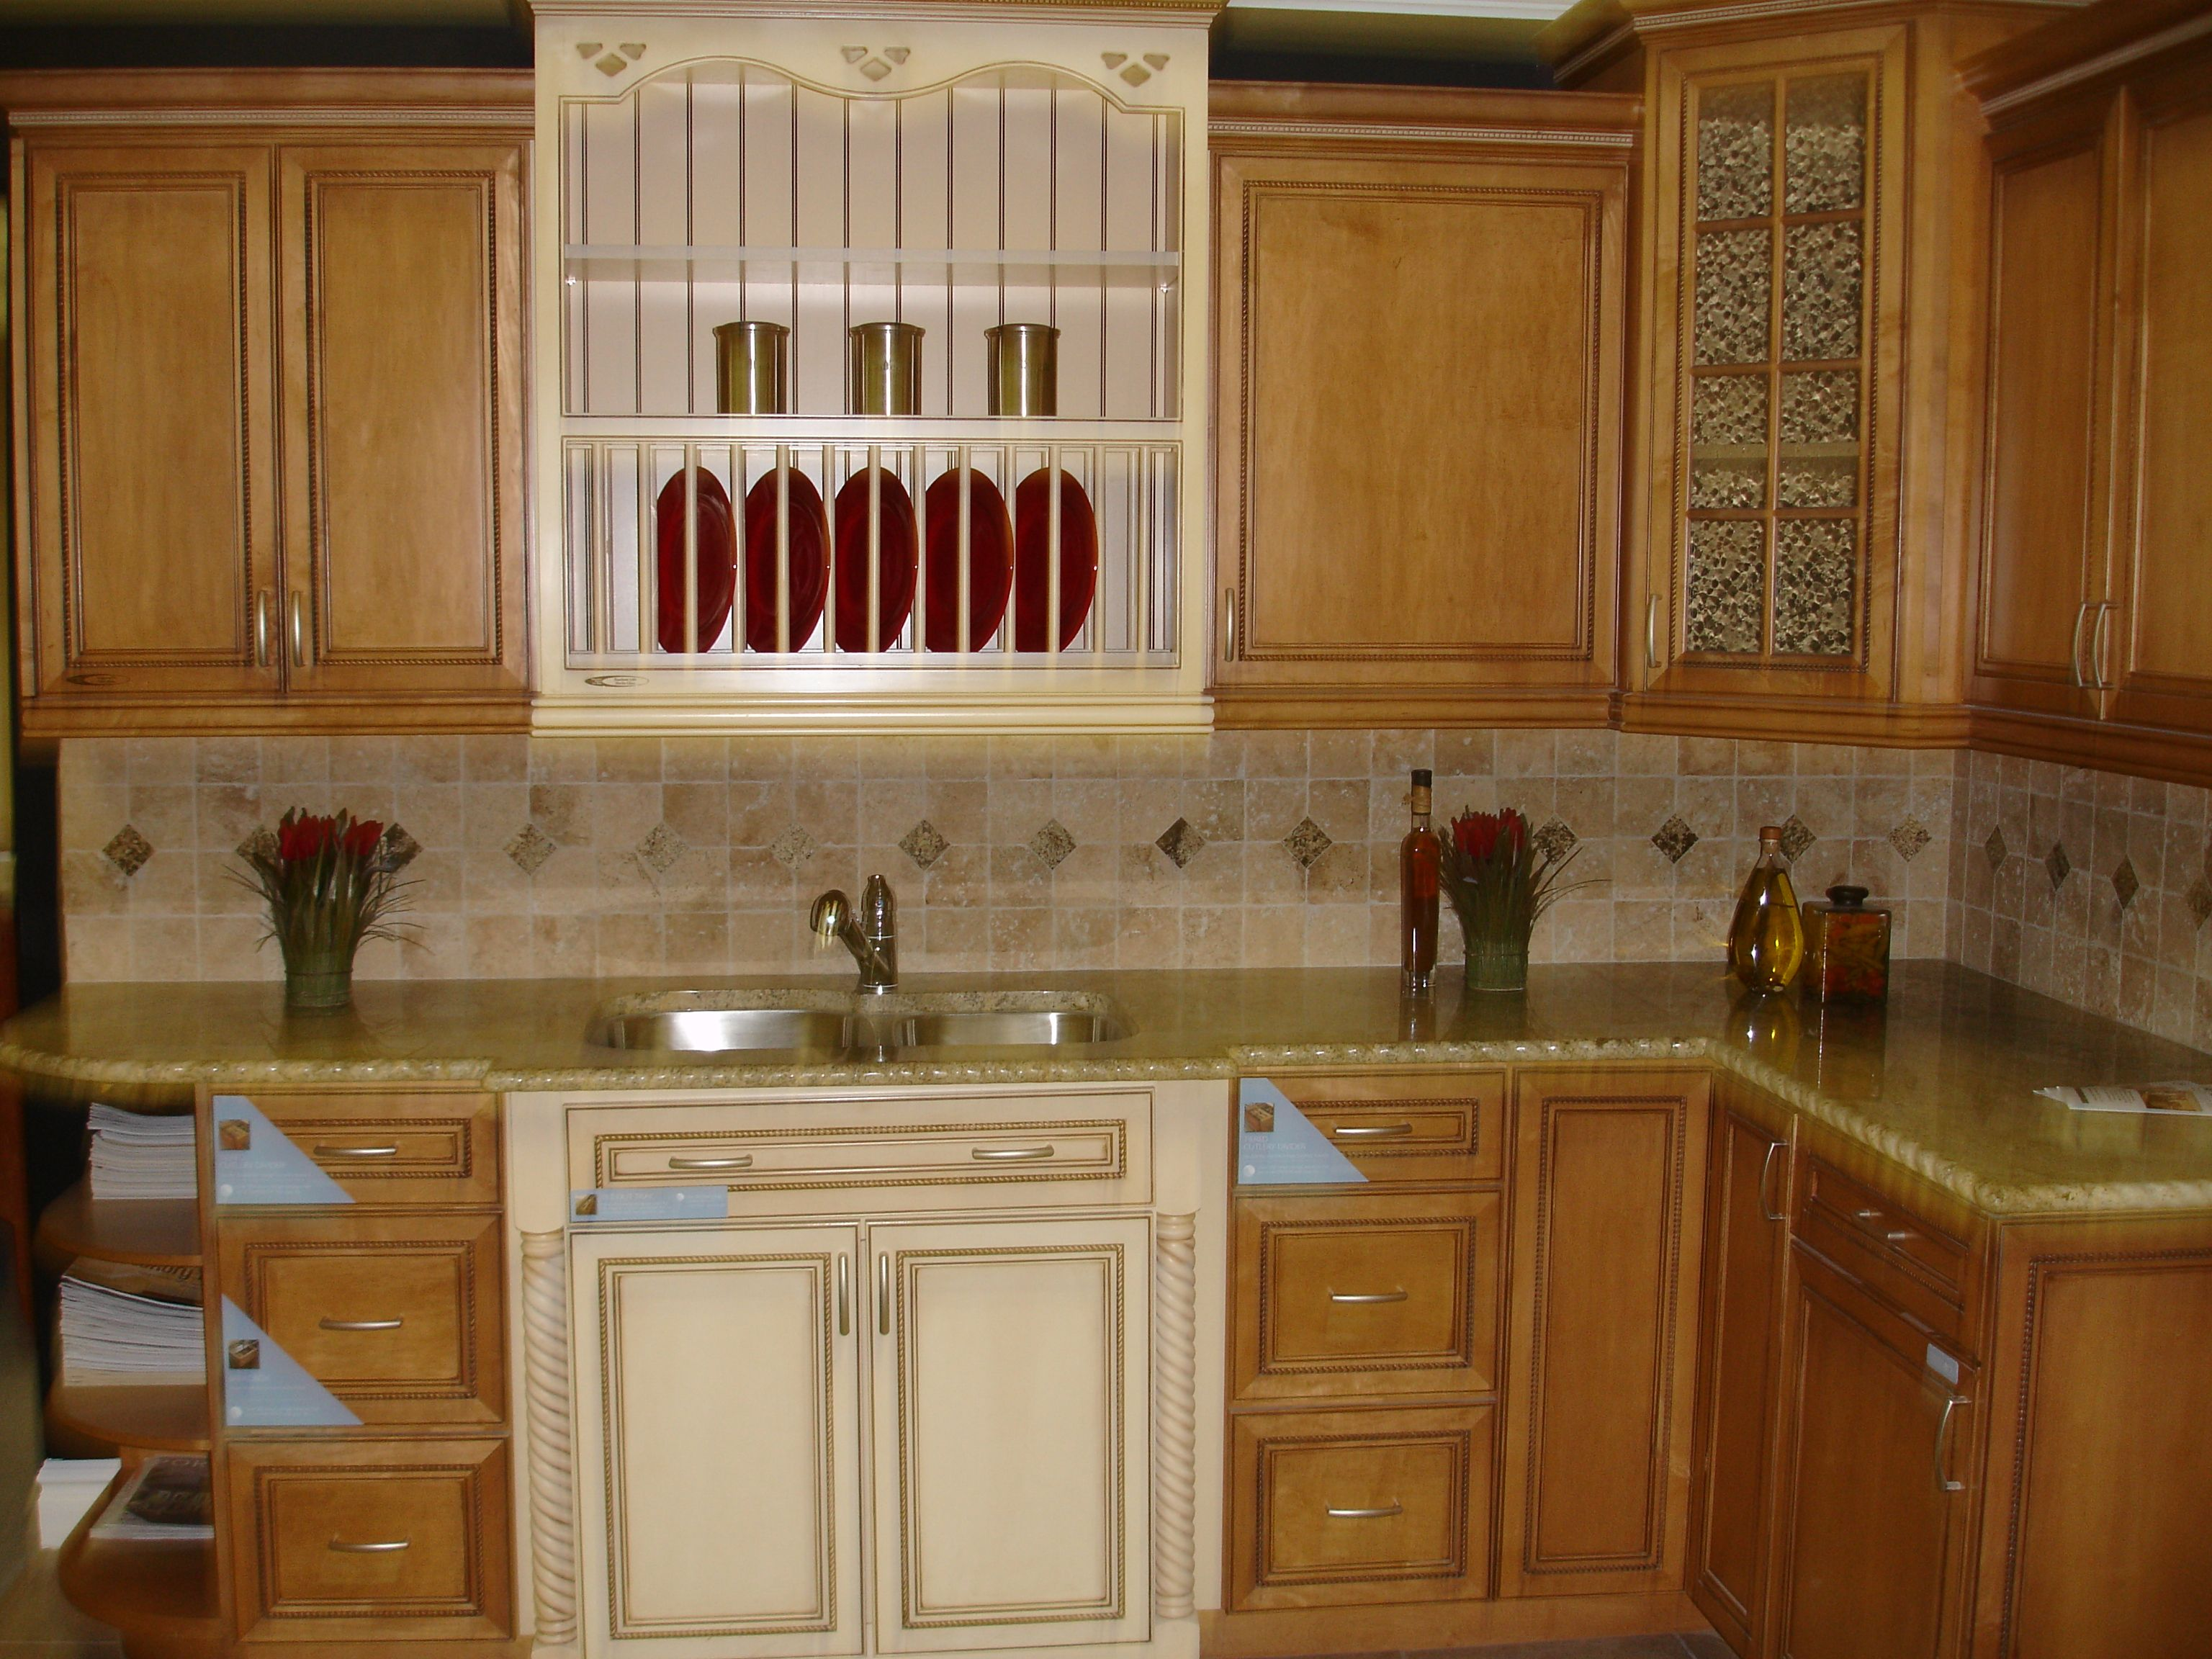 Furniture Transitional Kitchen With White Painted Maid Cabinet Kitchen Cabinet Styles Kraftmaid Kitchen Cabinets Kitchen Cabinets